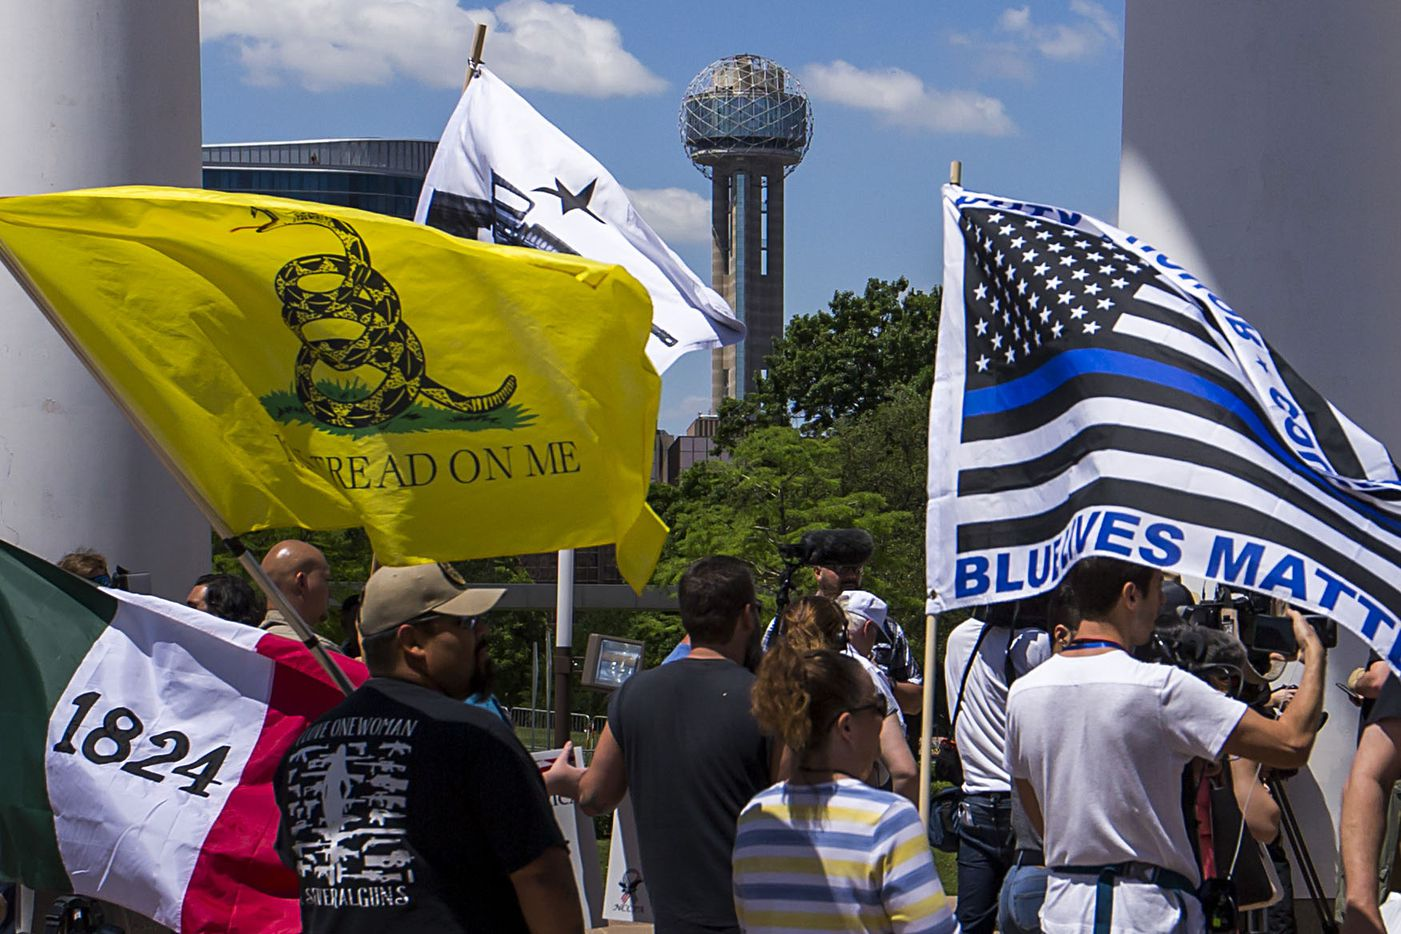 Gun rights advocates demonstrate outside Dallas City Hall at a rally organized by Open Carry Texas during the NRA Annual Meeting & Exhibits at the Kay Bailey Hutchison Convention Center on Saturday, May 5, 2018, in Dallas.